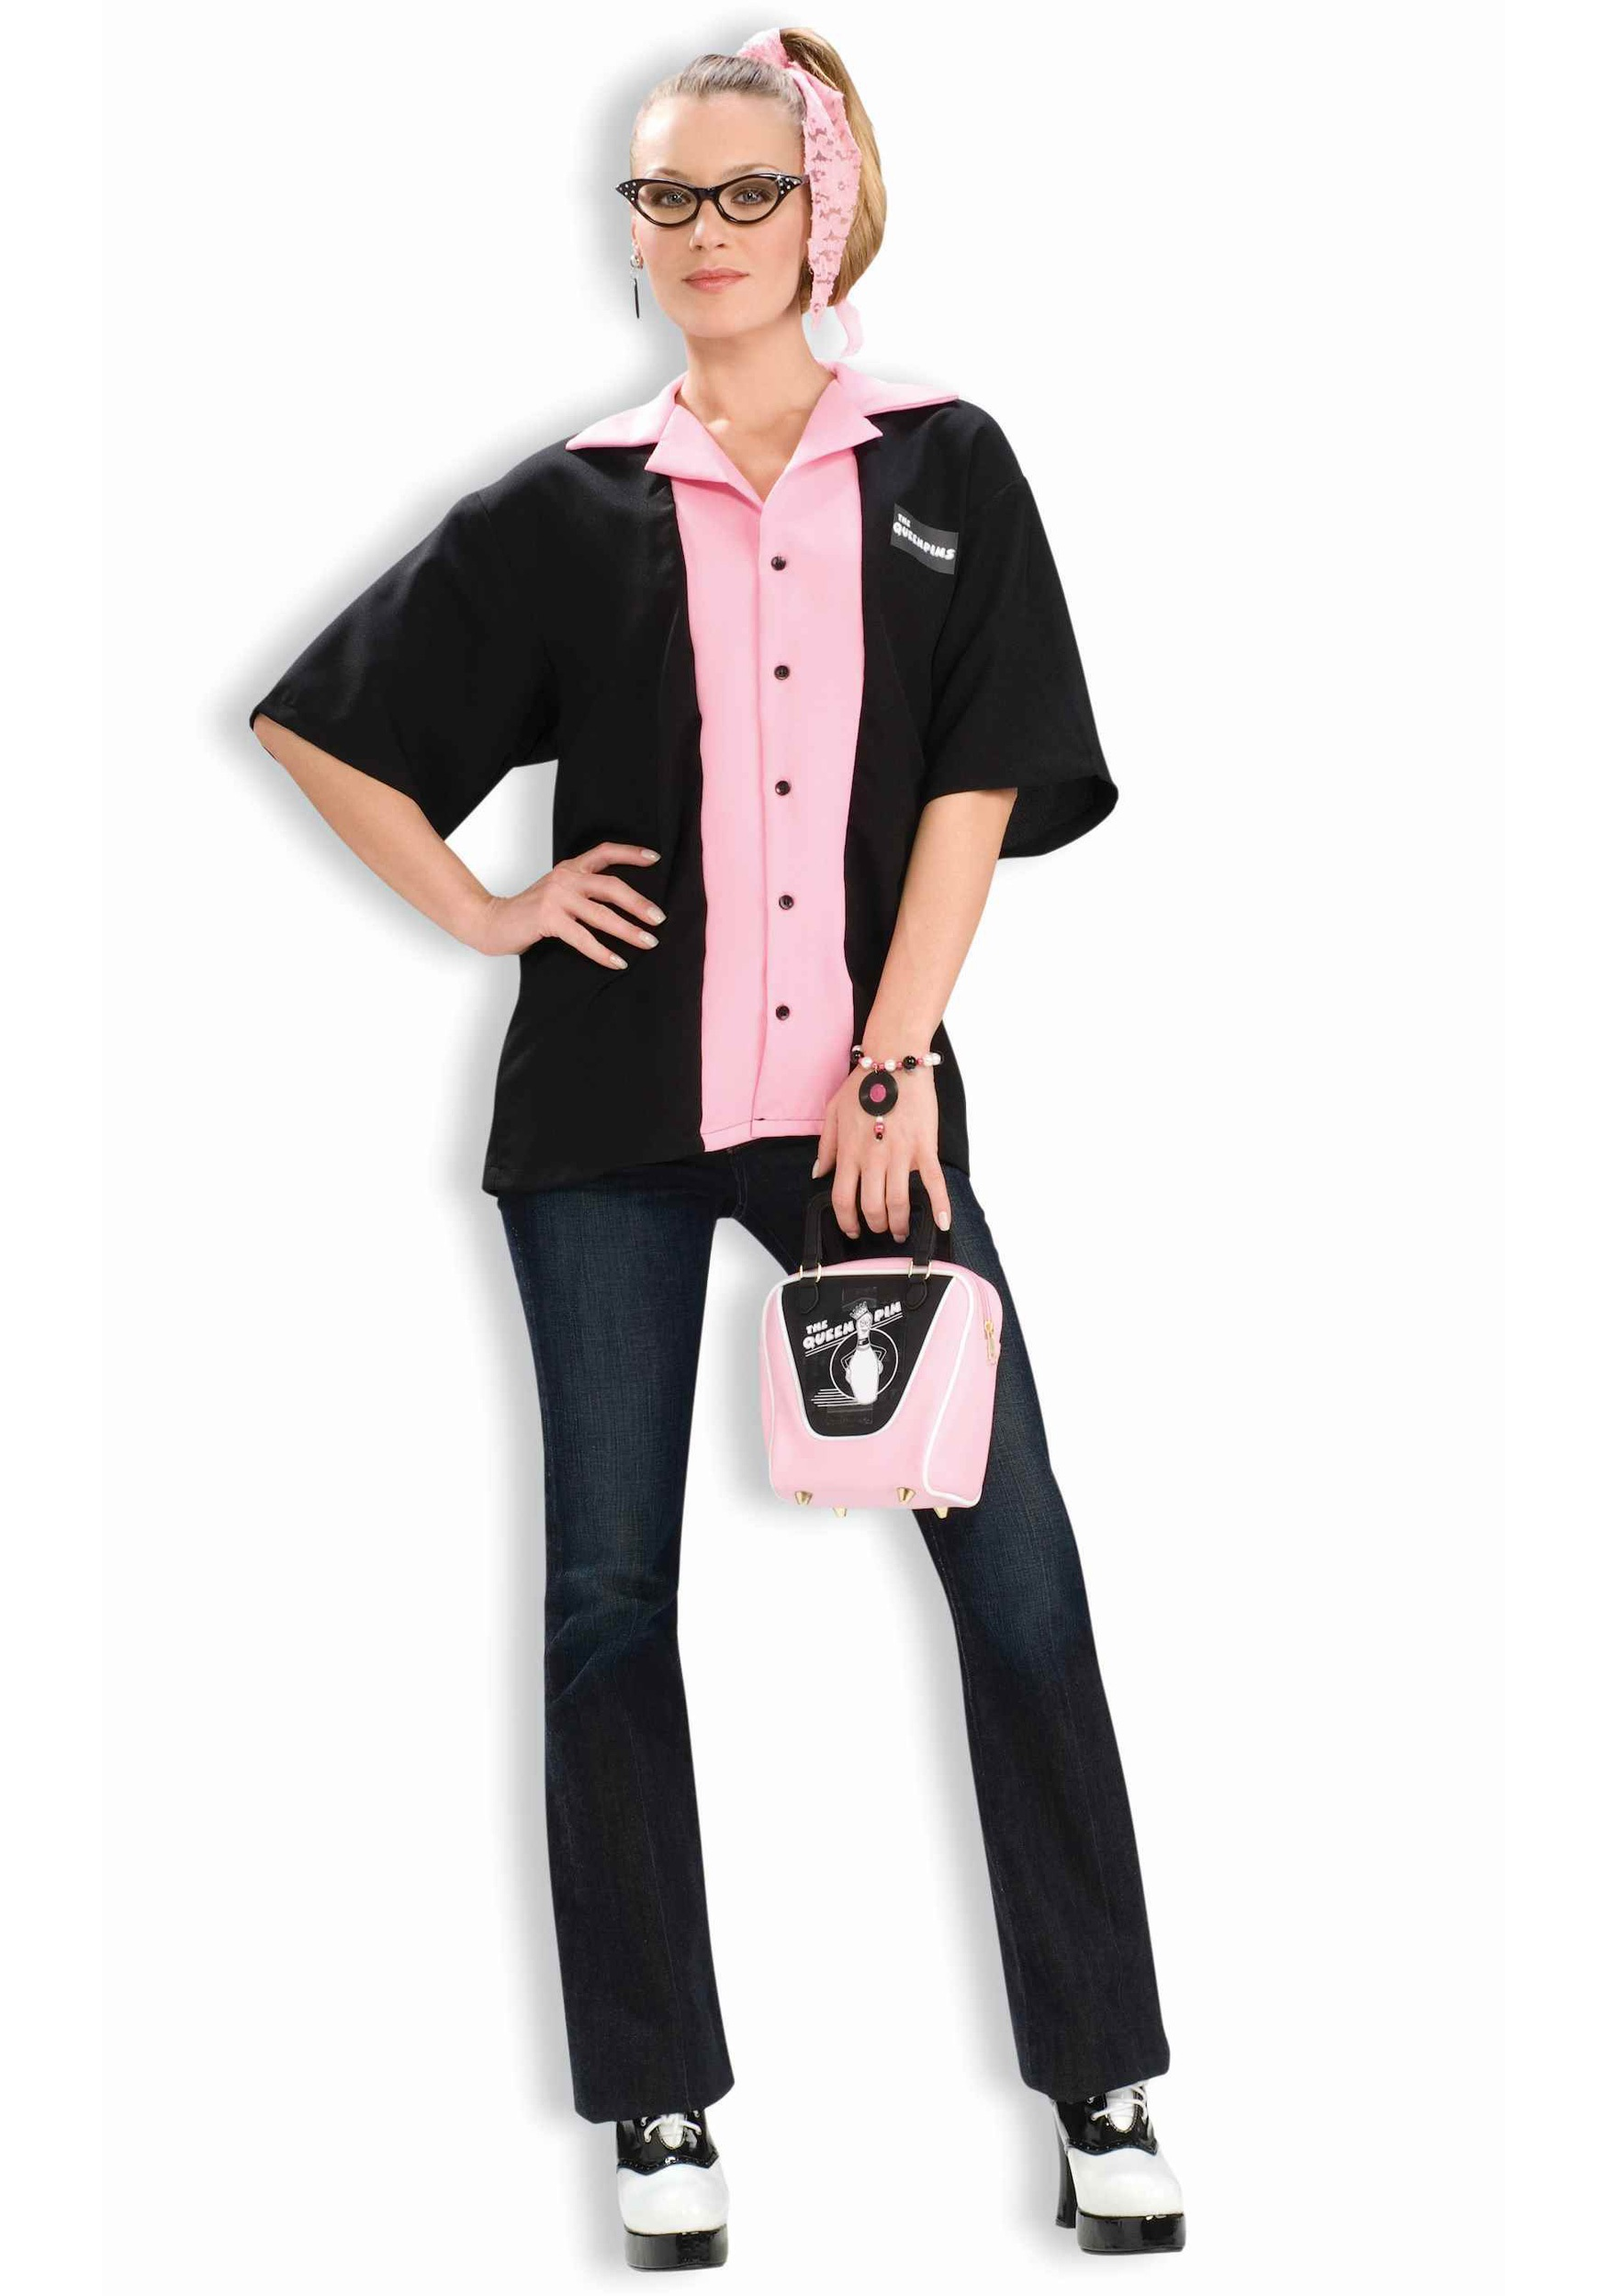 Womens Retro Bowling Shirt  sc 1 st  Halloween Costume & Womens Retro Bowling Shirt - Adult 50s Costume Ideas